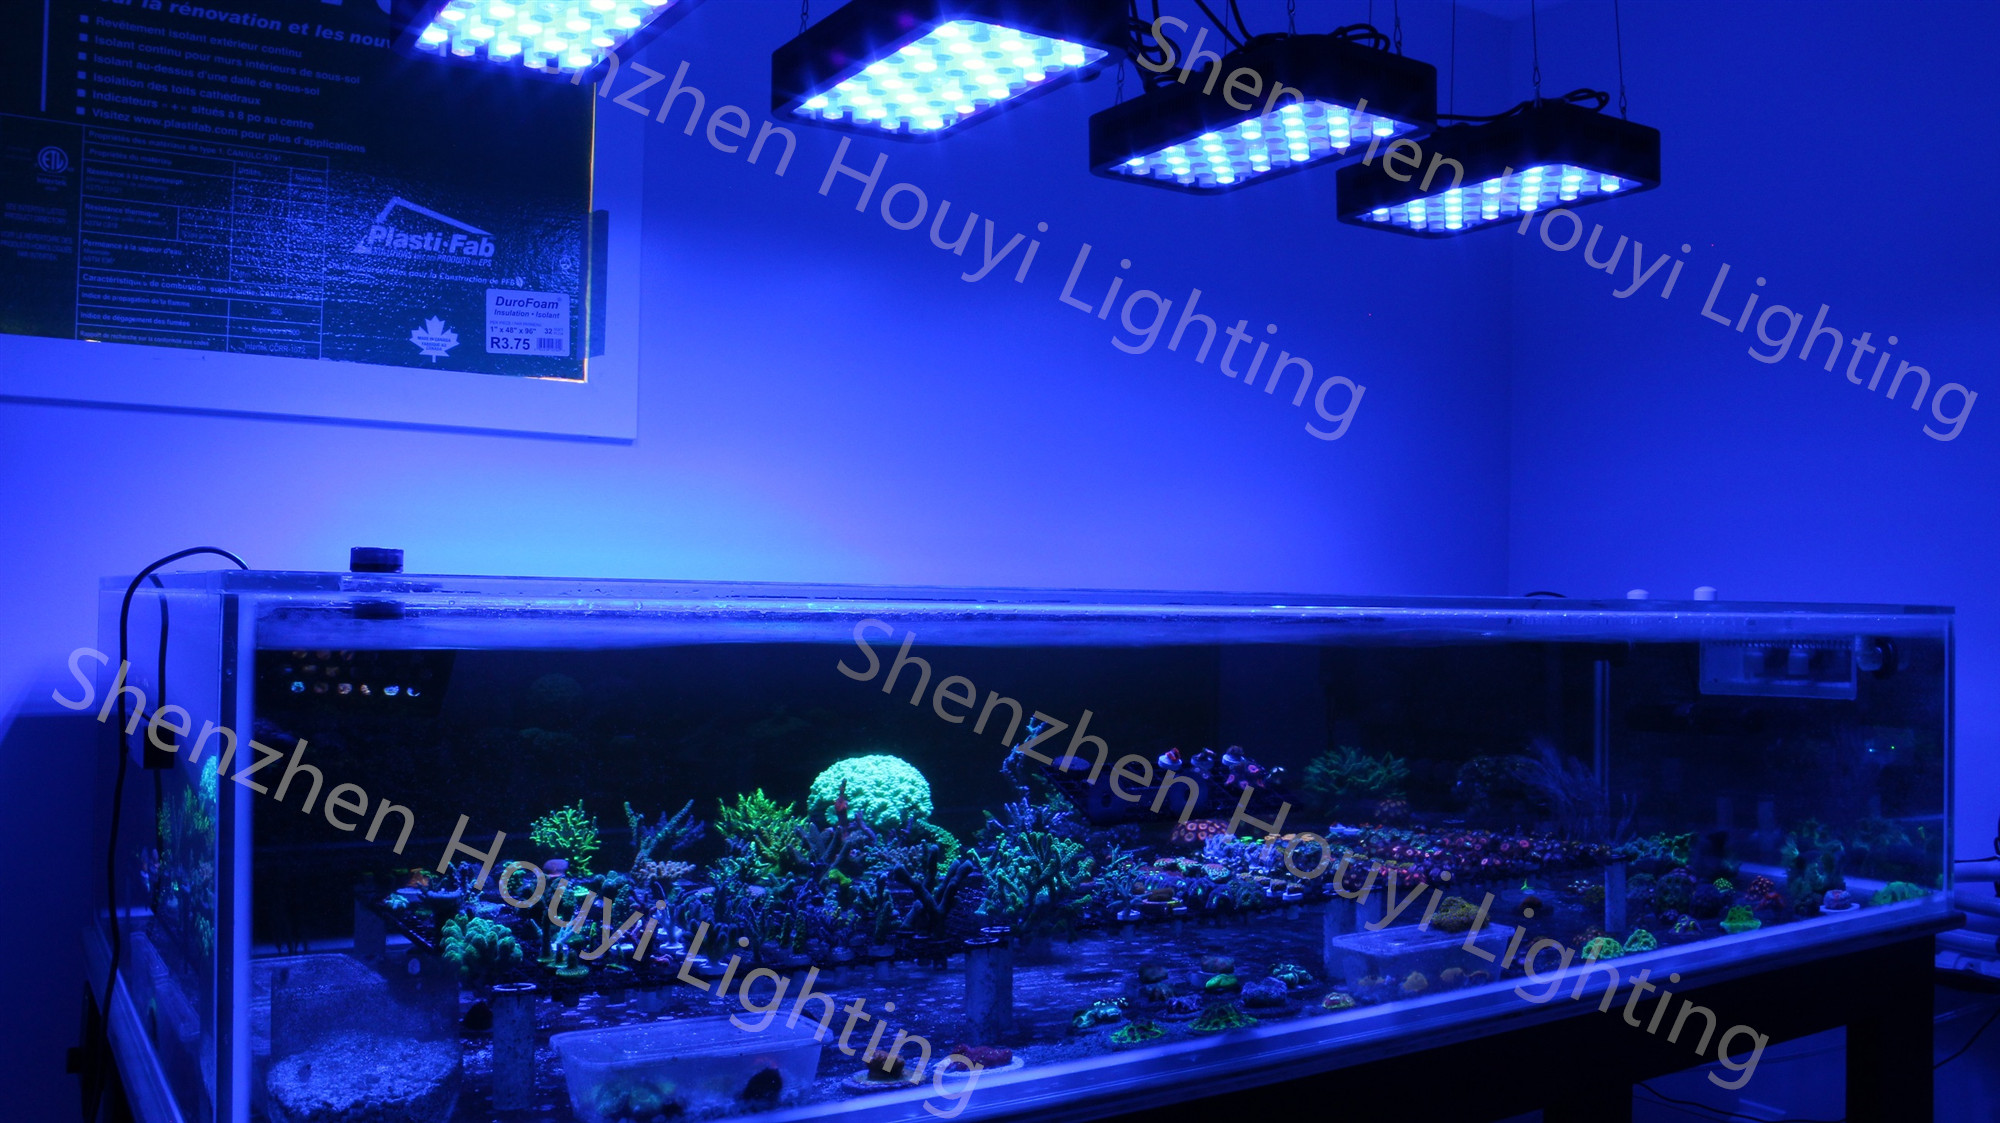 Smart WiFi Reef LED Licht Volledige Spectrum Zonsopgang en Zonsondergang LED Aquarium Licht